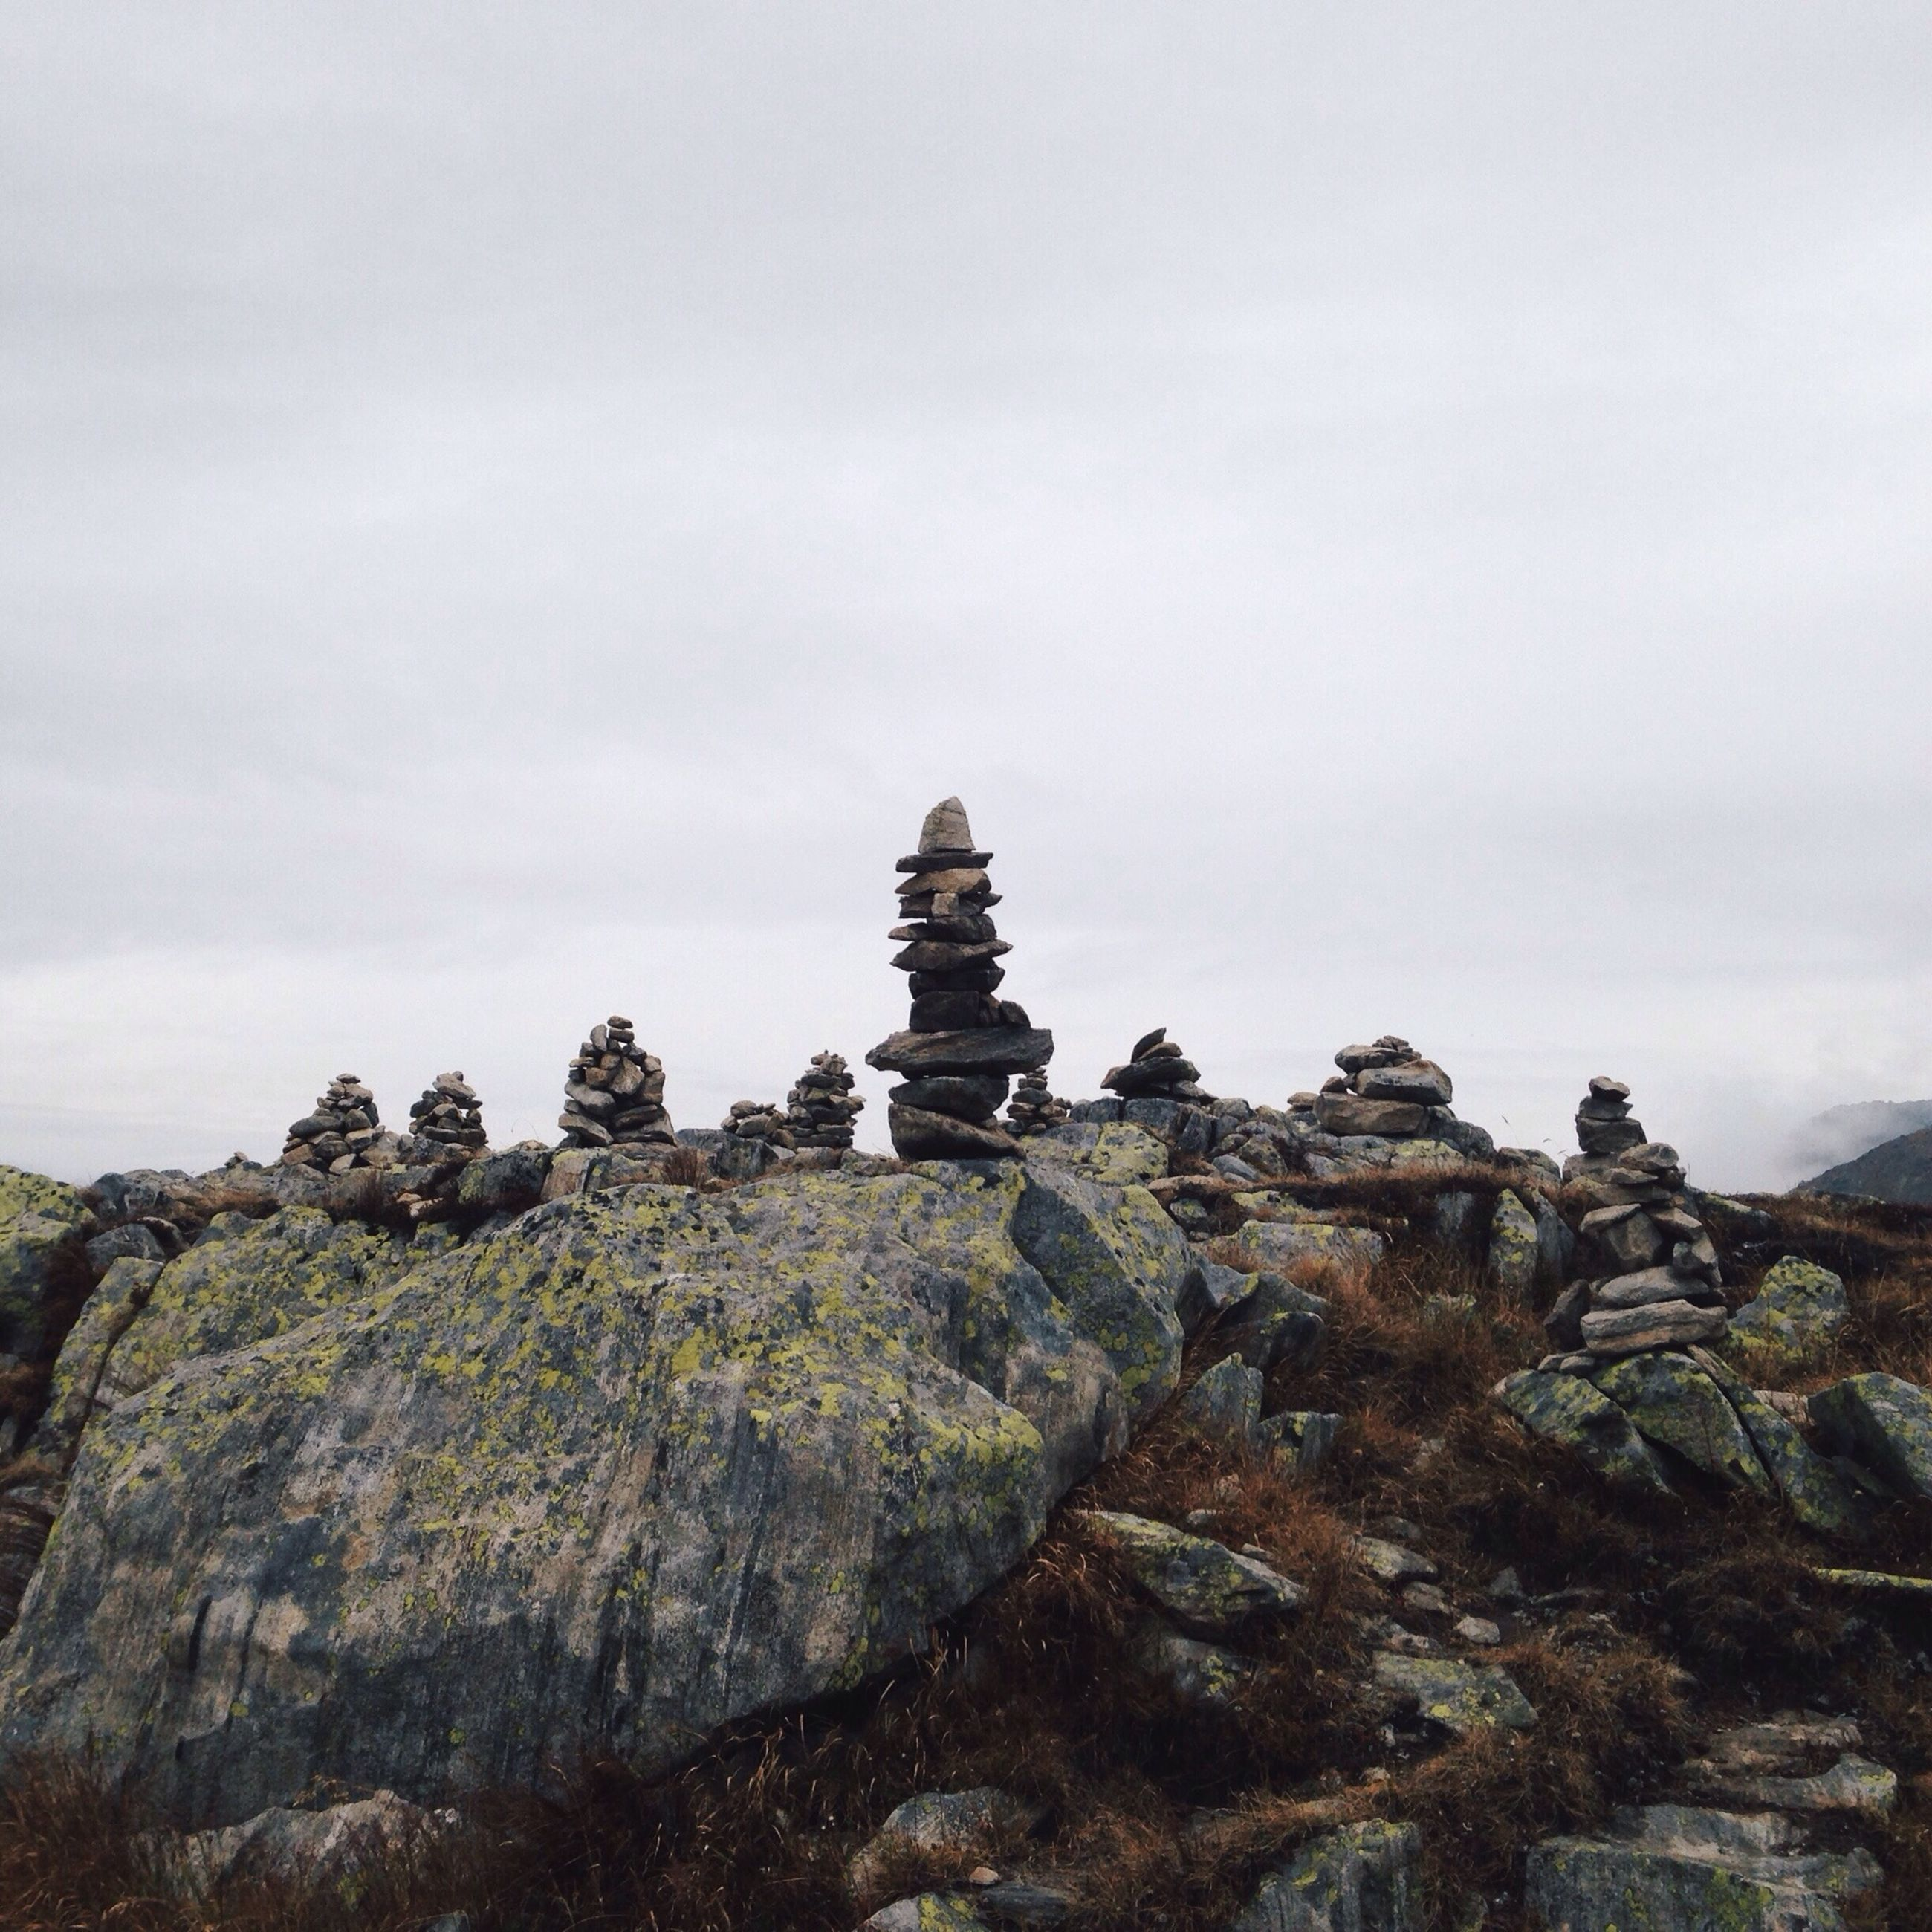 rock - object, sky, rock formation, low angle view, history, ancient, tranquility, old ruin, nature, tranquil scene, built structure, rock, copy space, architecture, the past, clear sky, geology, travel destinations, day, stone